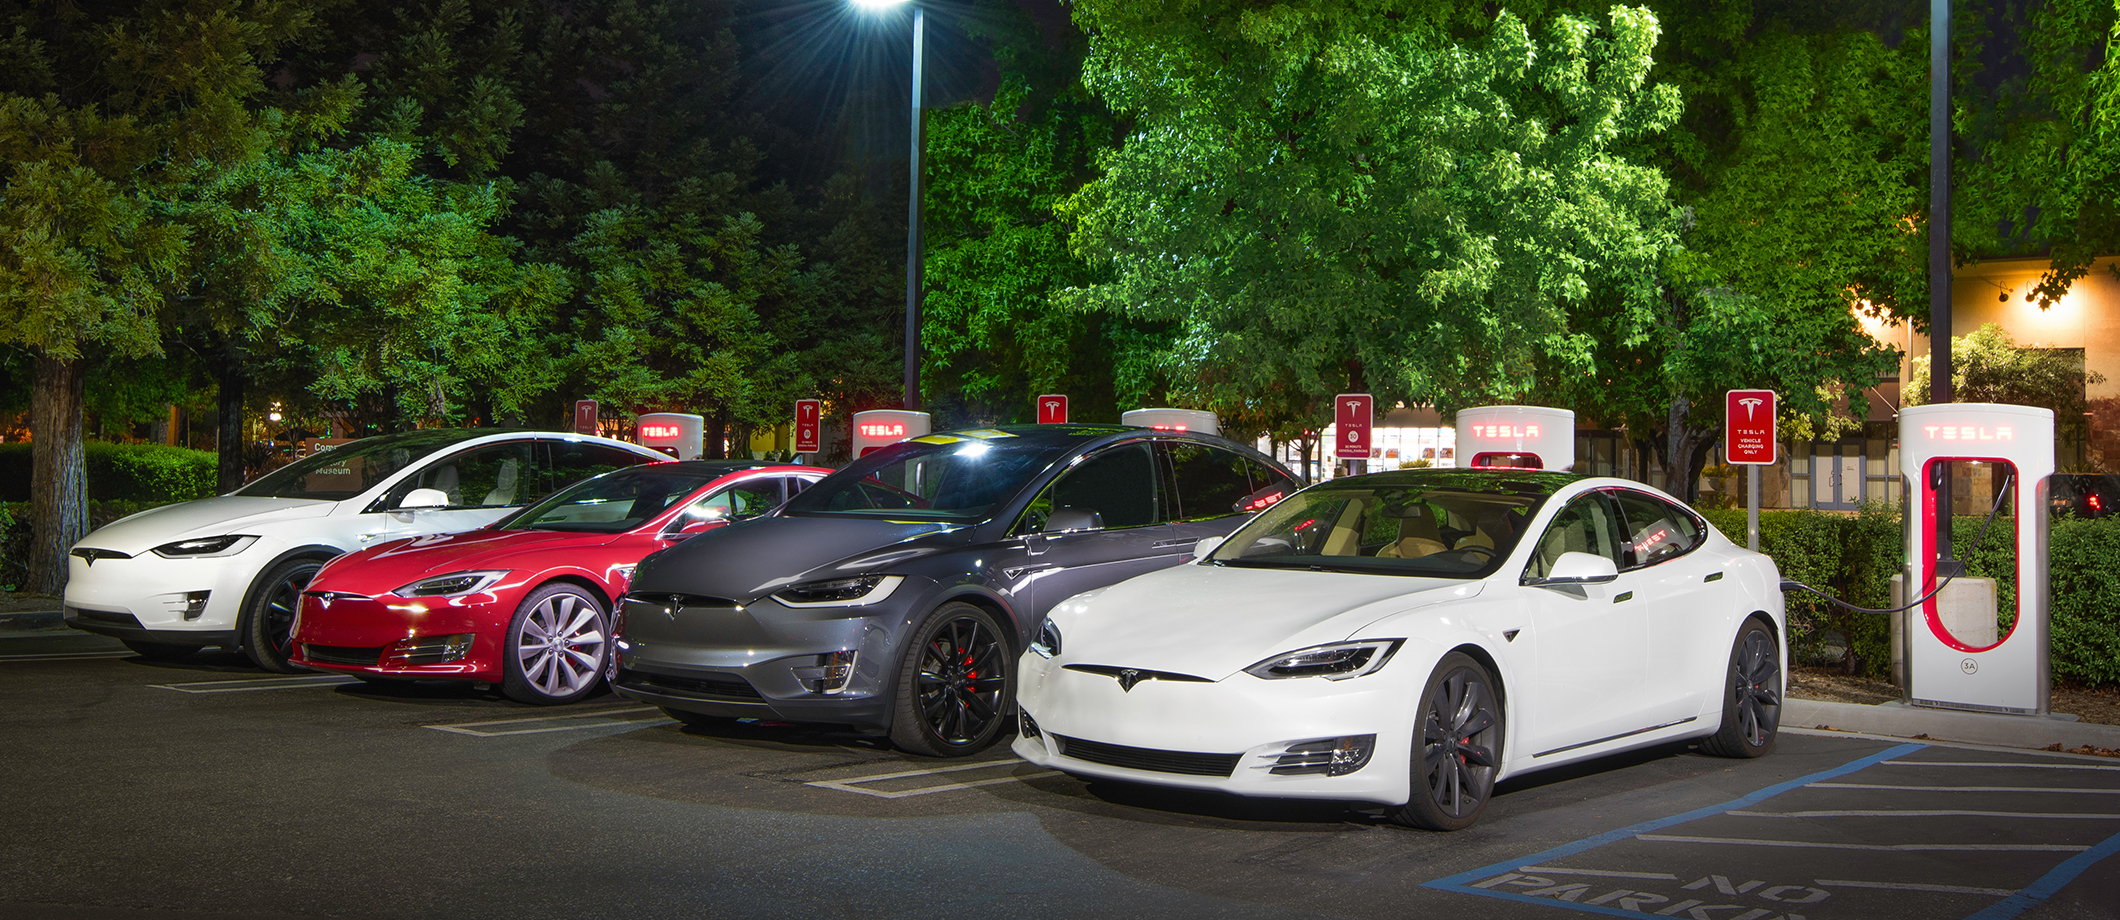 supercharger_group_night